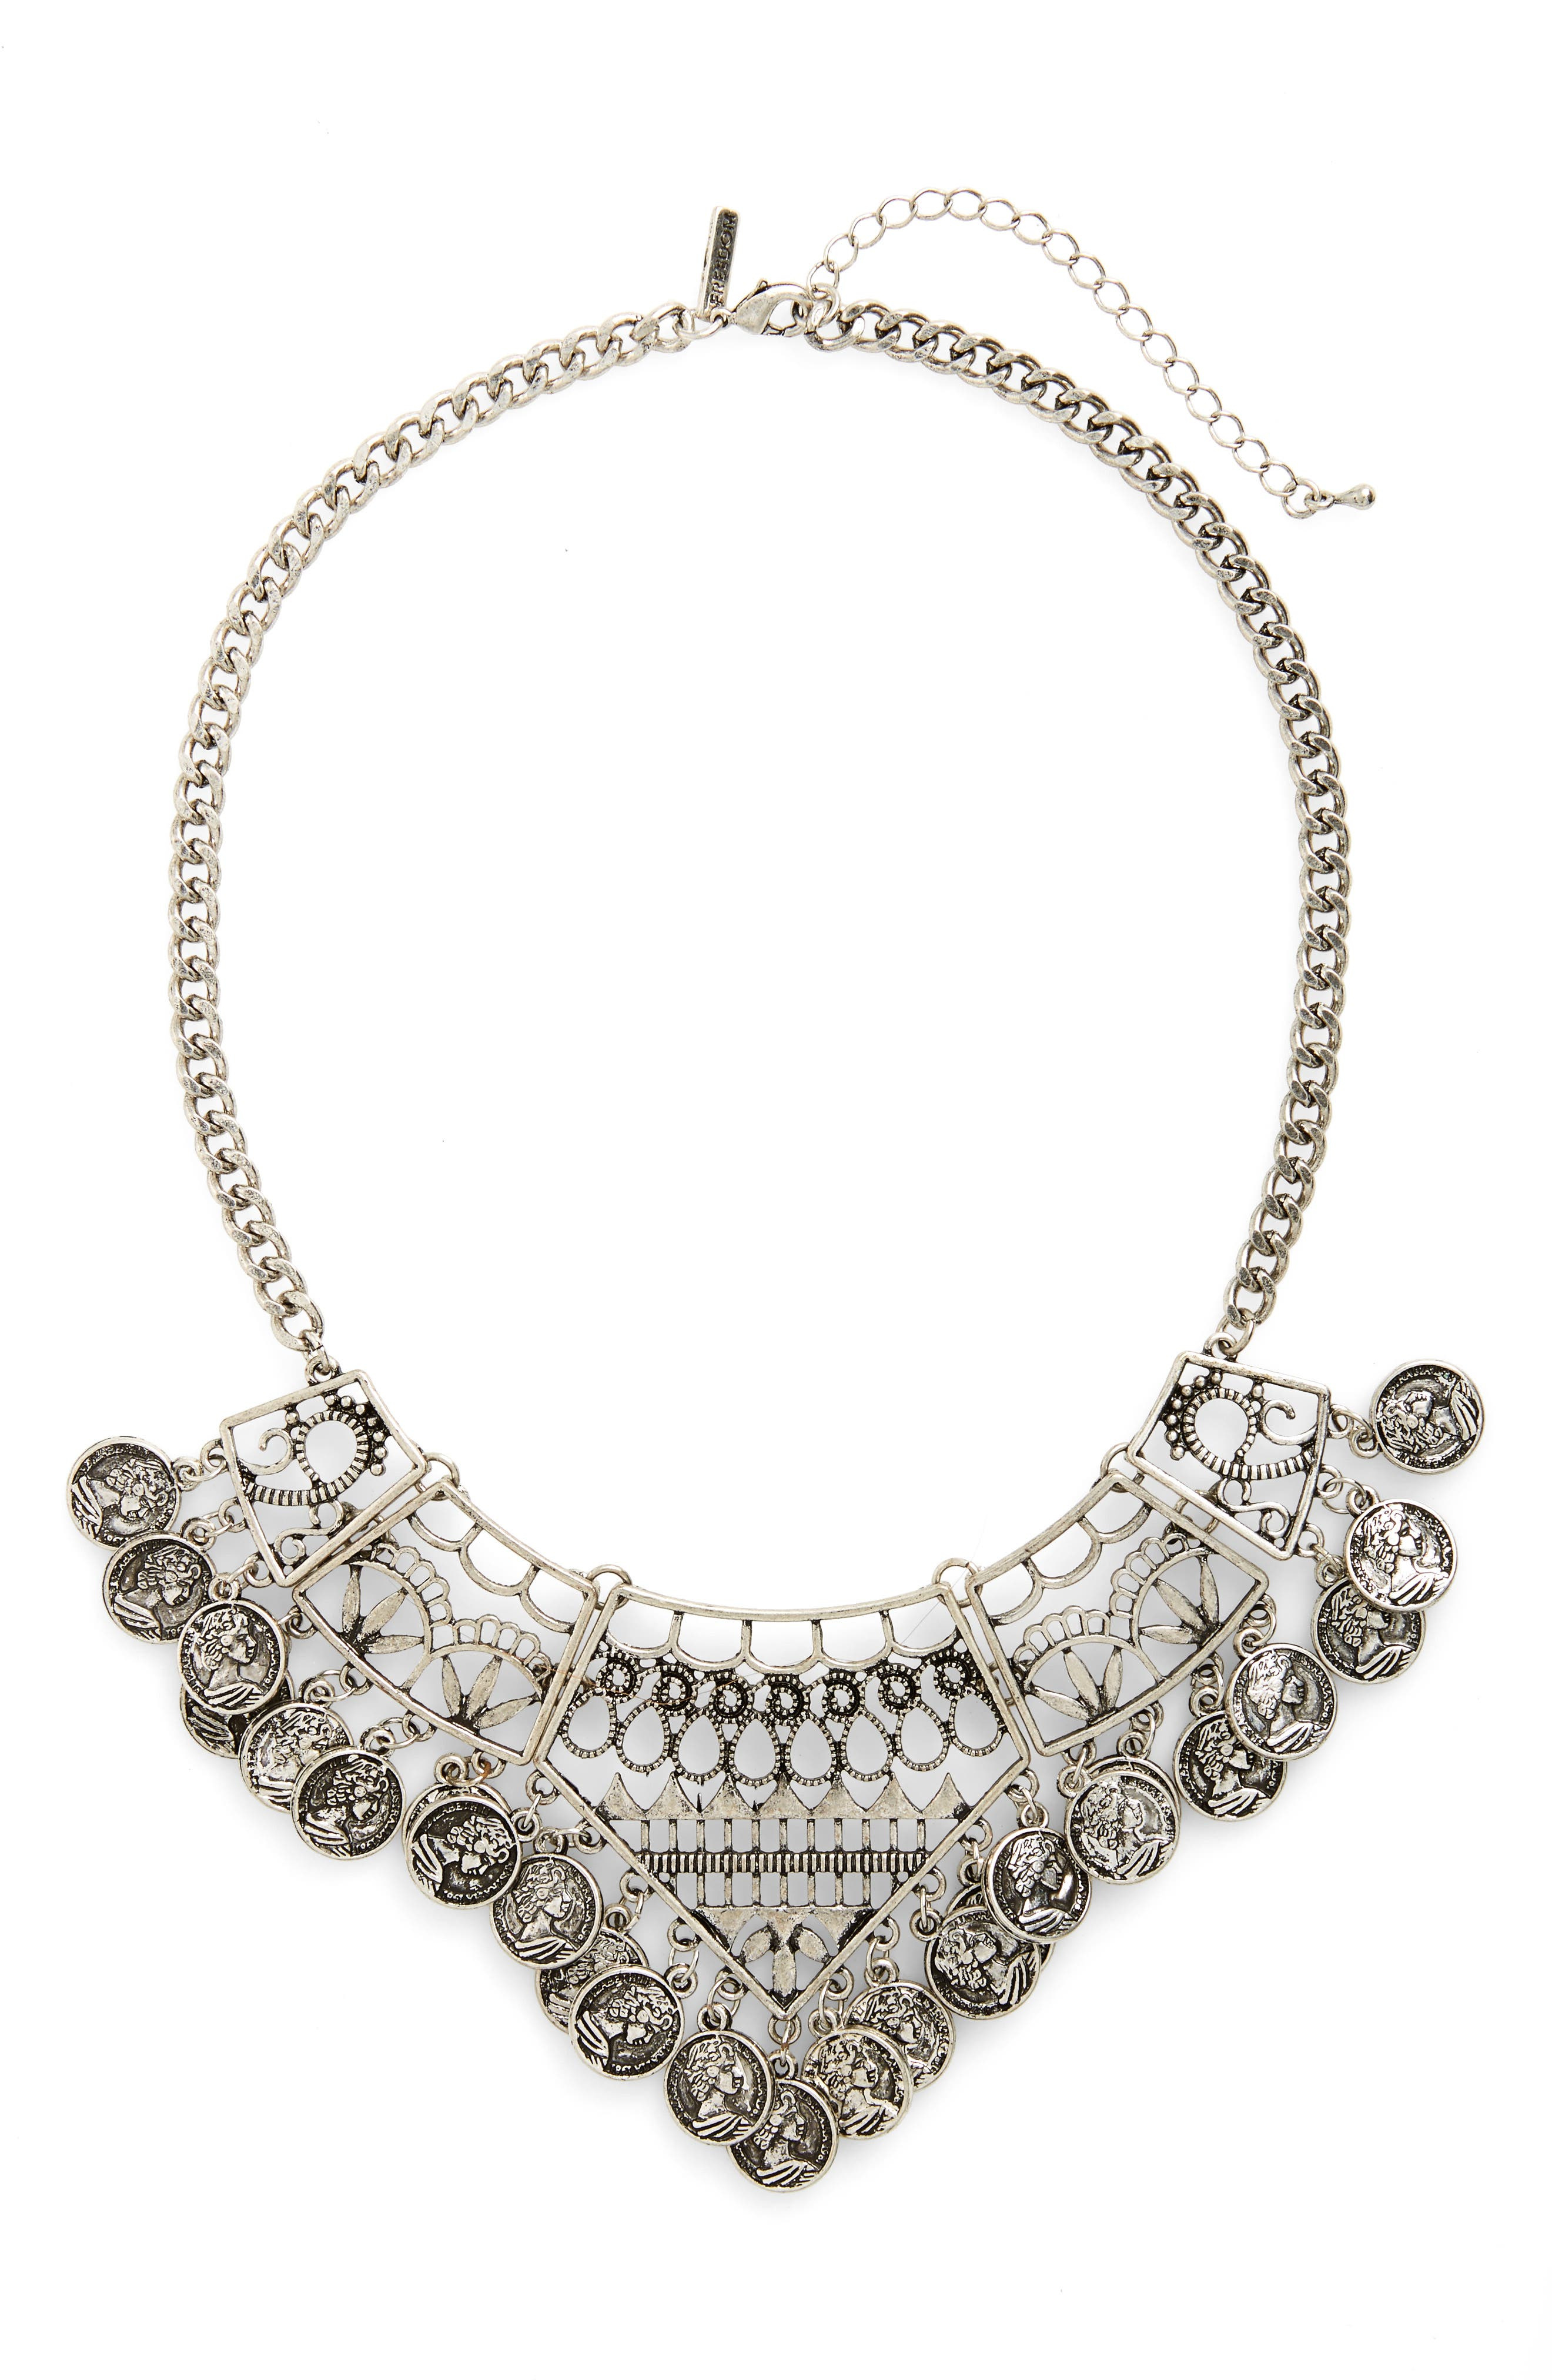 Main Image - Topshop Coin Collar Necklace